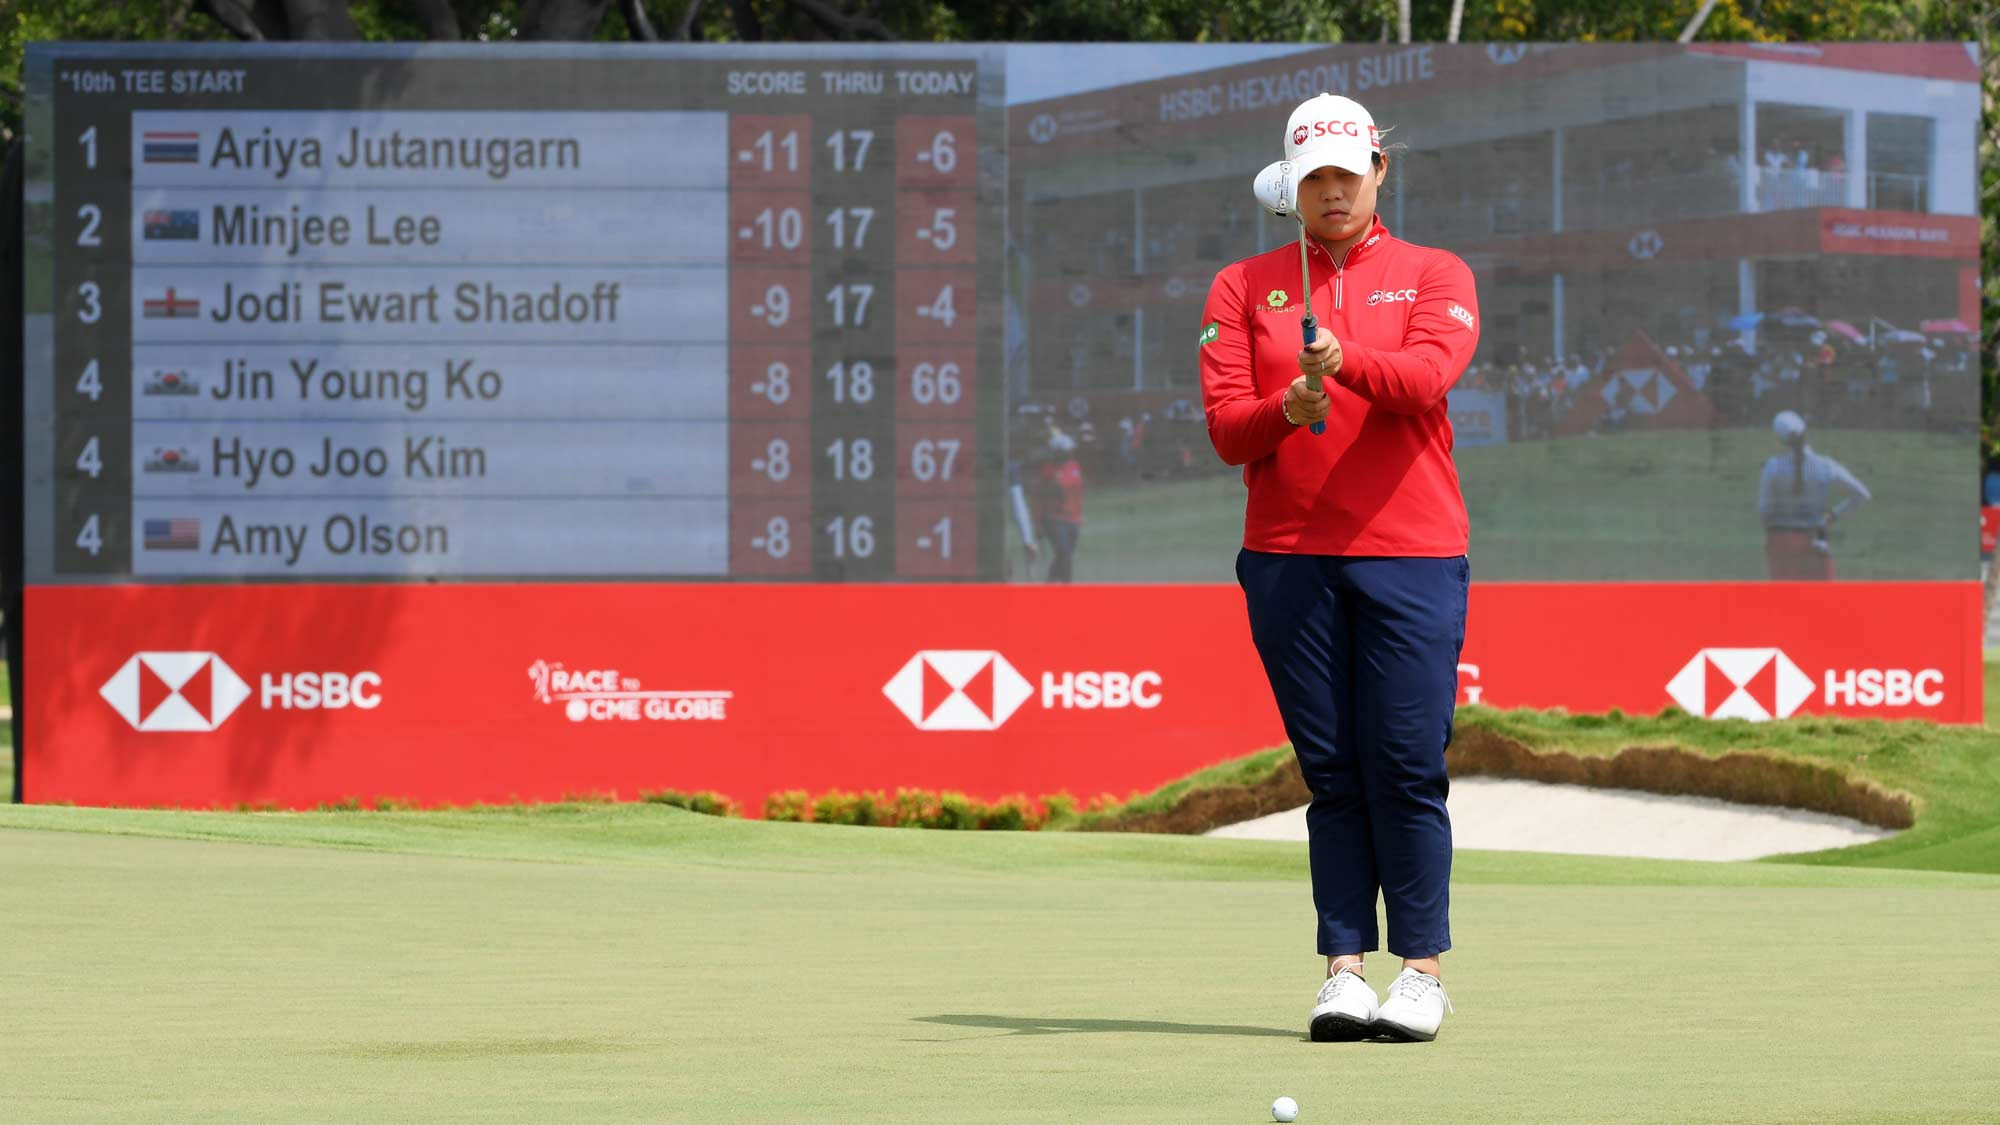 Park Sung-hyun storms past field to win LPGA World Championship